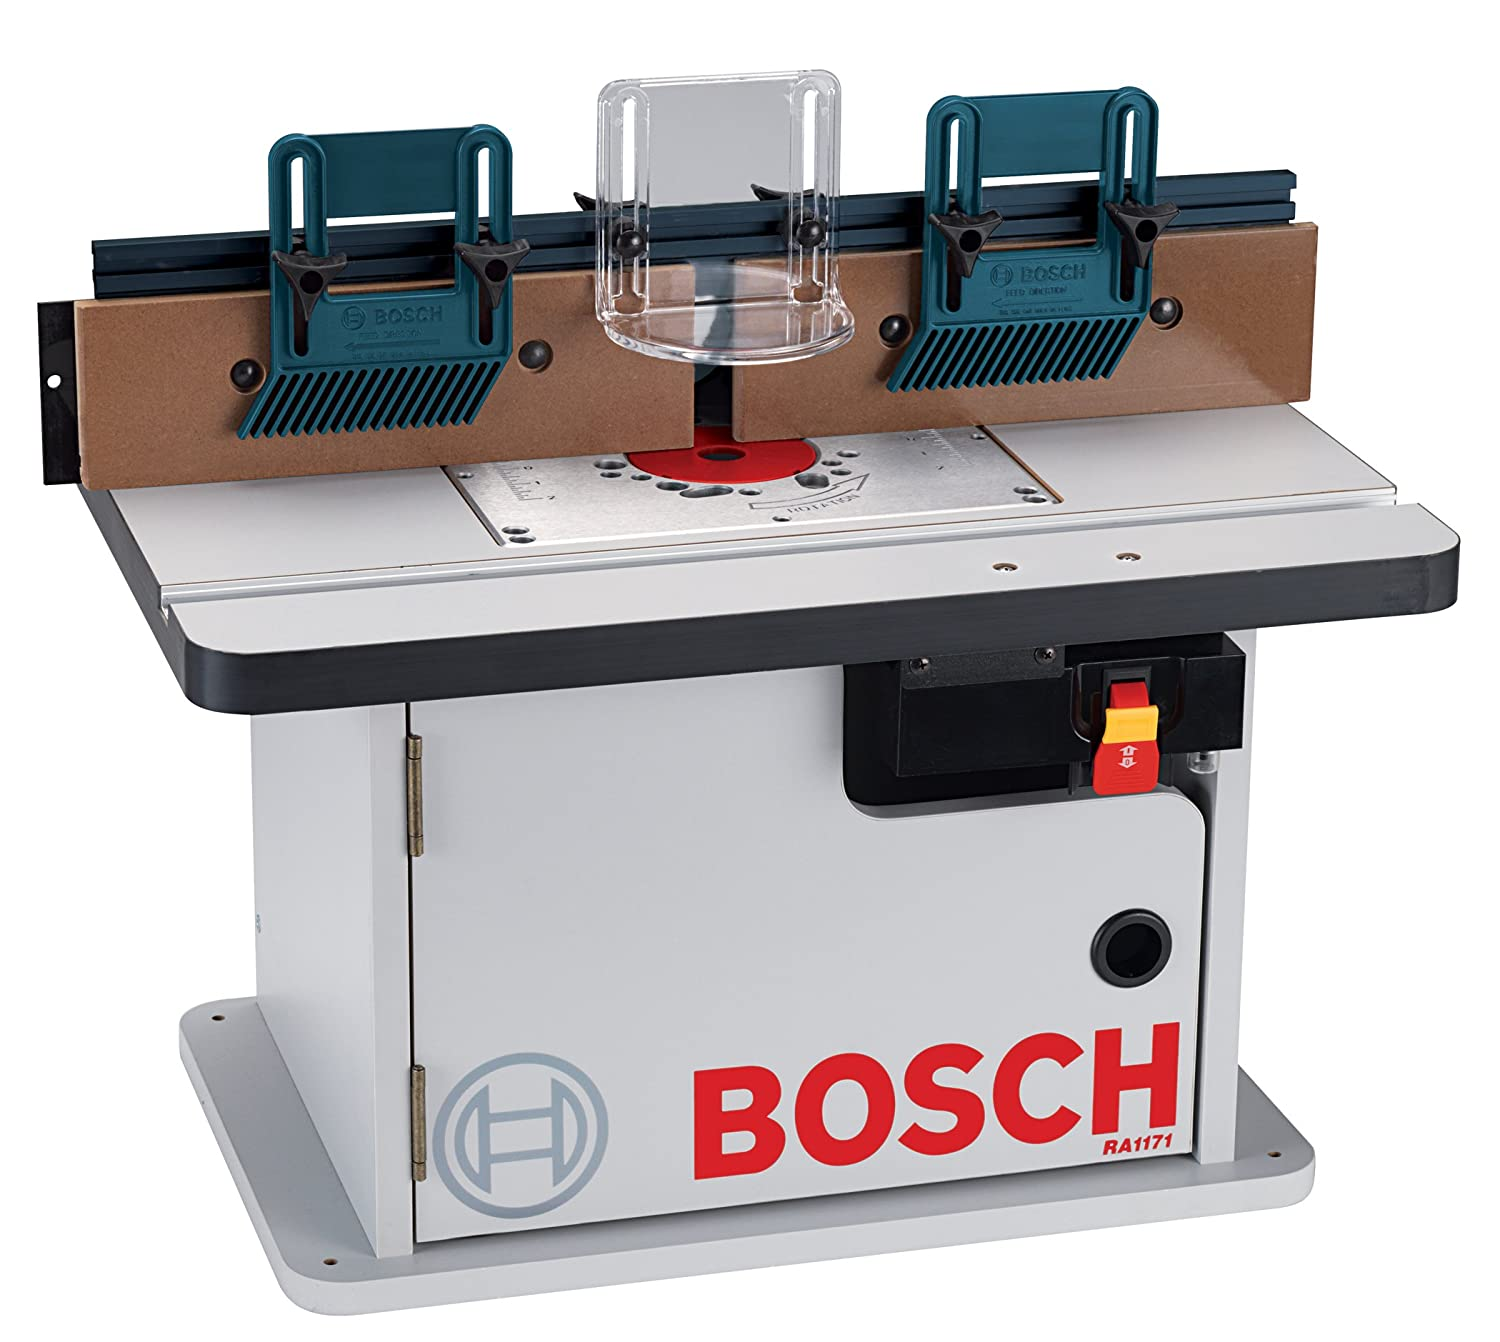 Bosch ra1171 cabinet style router table power router accessories bosch ra1171 cabinet style router table power router accessories amazon keyboard keysfo Image collections